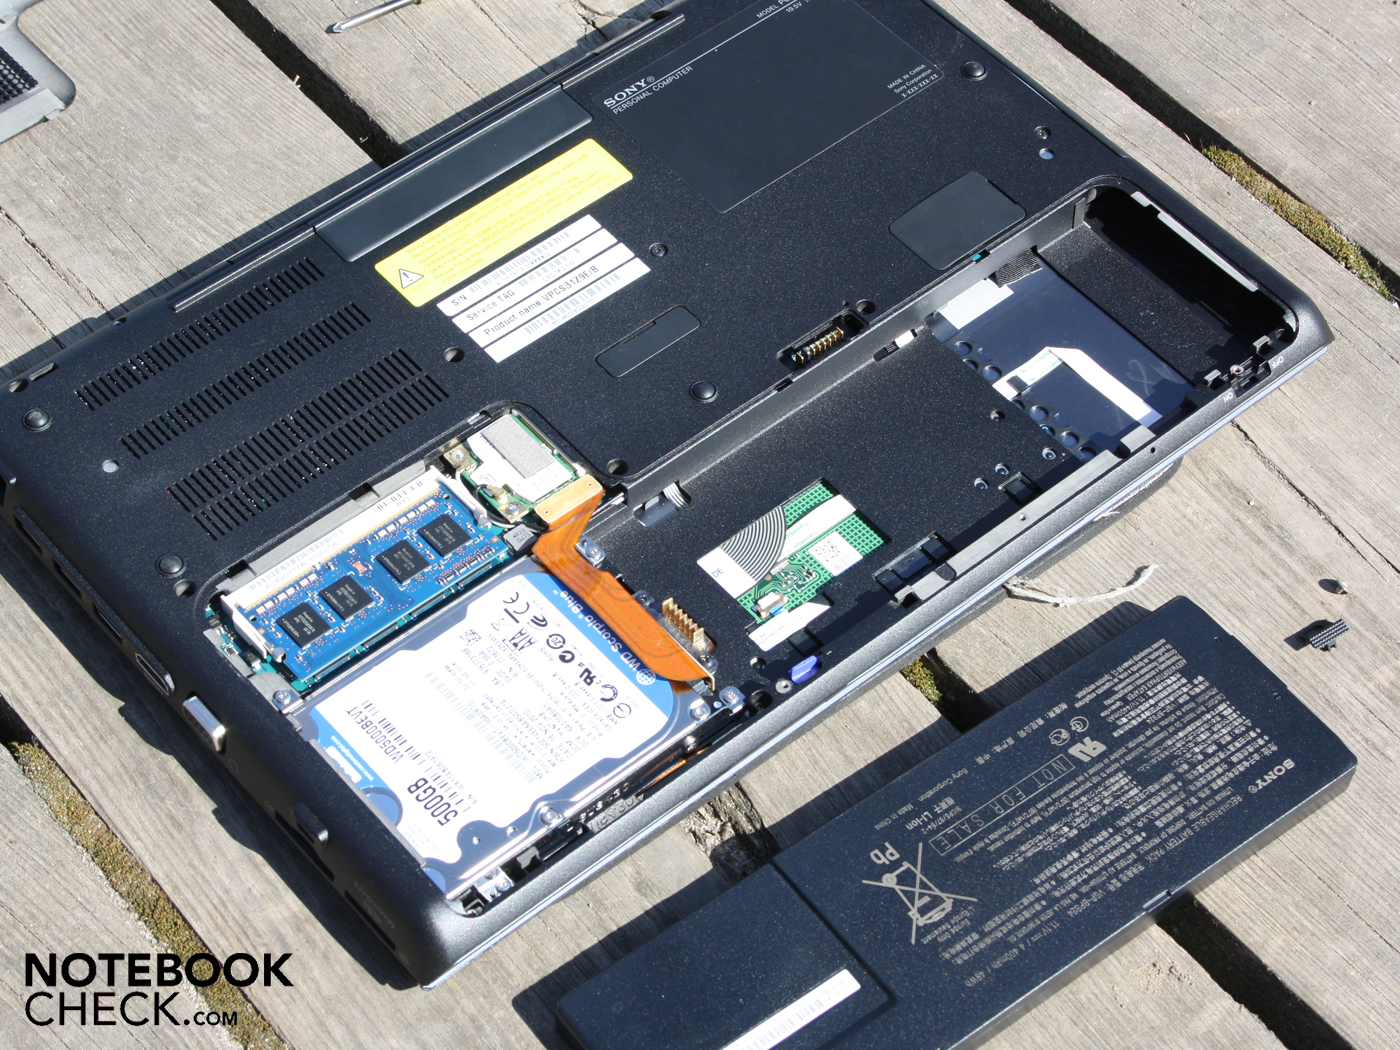 Sony vaio t13 ultrabook review the register - Built In But Removable Battery